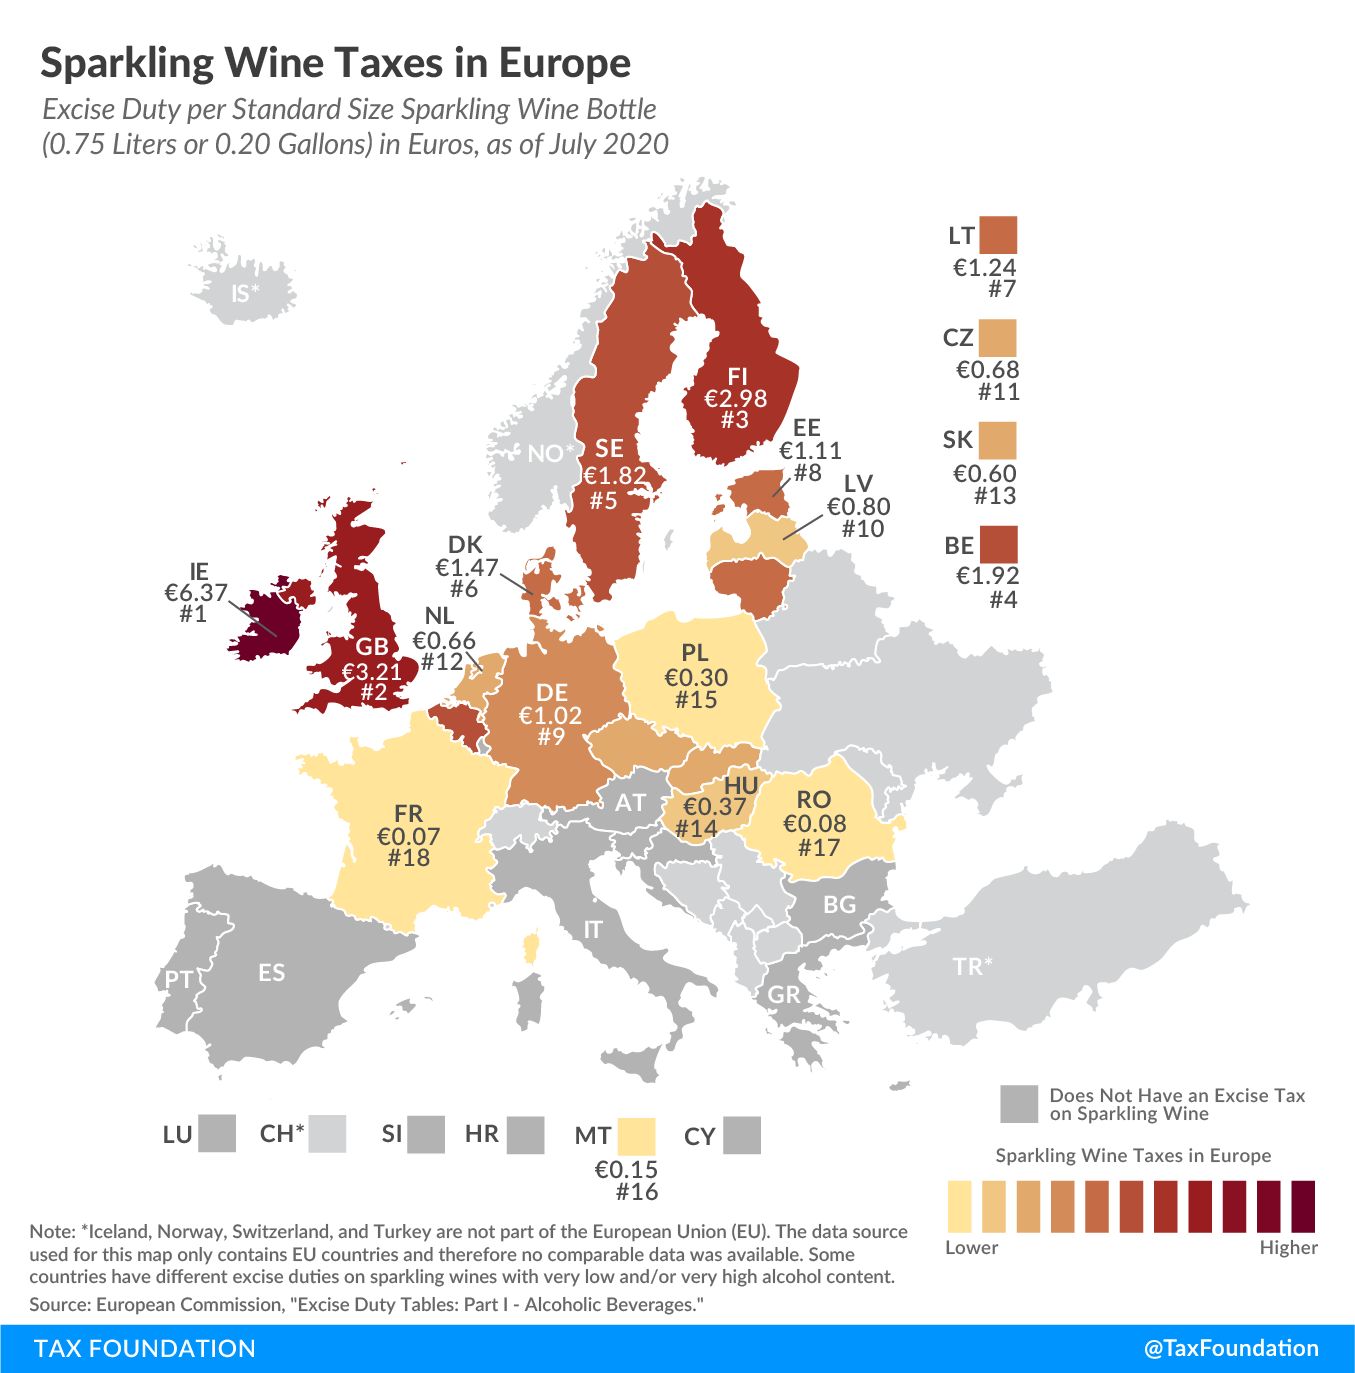 New Year's Eve taxes, Sparkling wine taxes in Europe